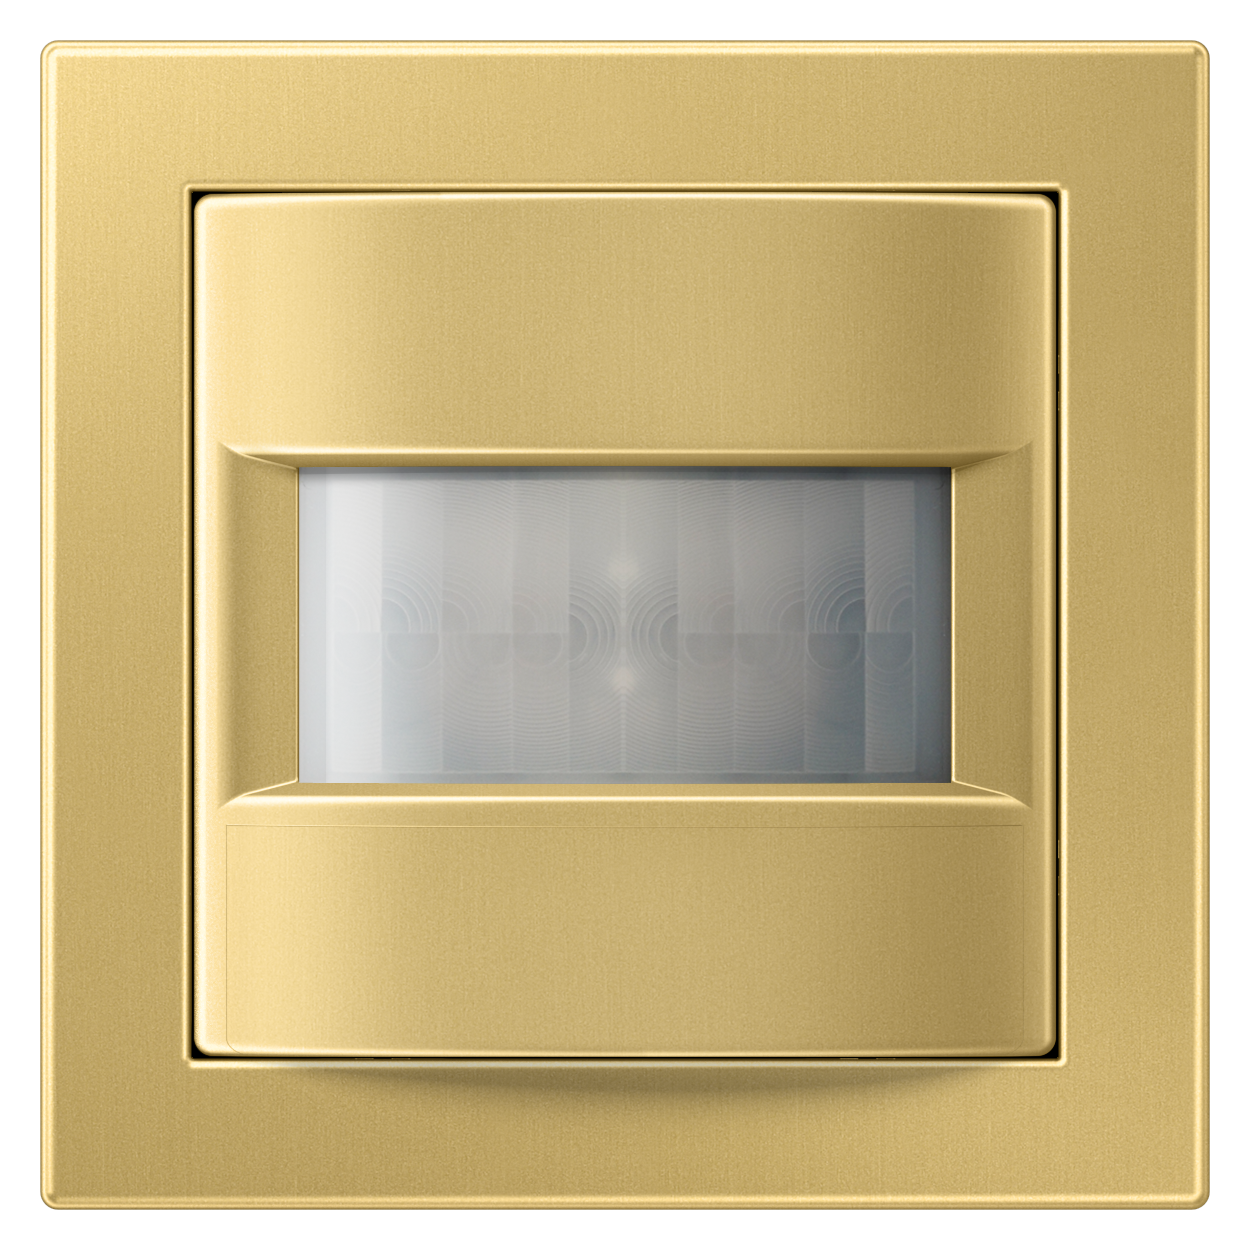 JUNG_LS_Design_classic-brass_automatic-switch